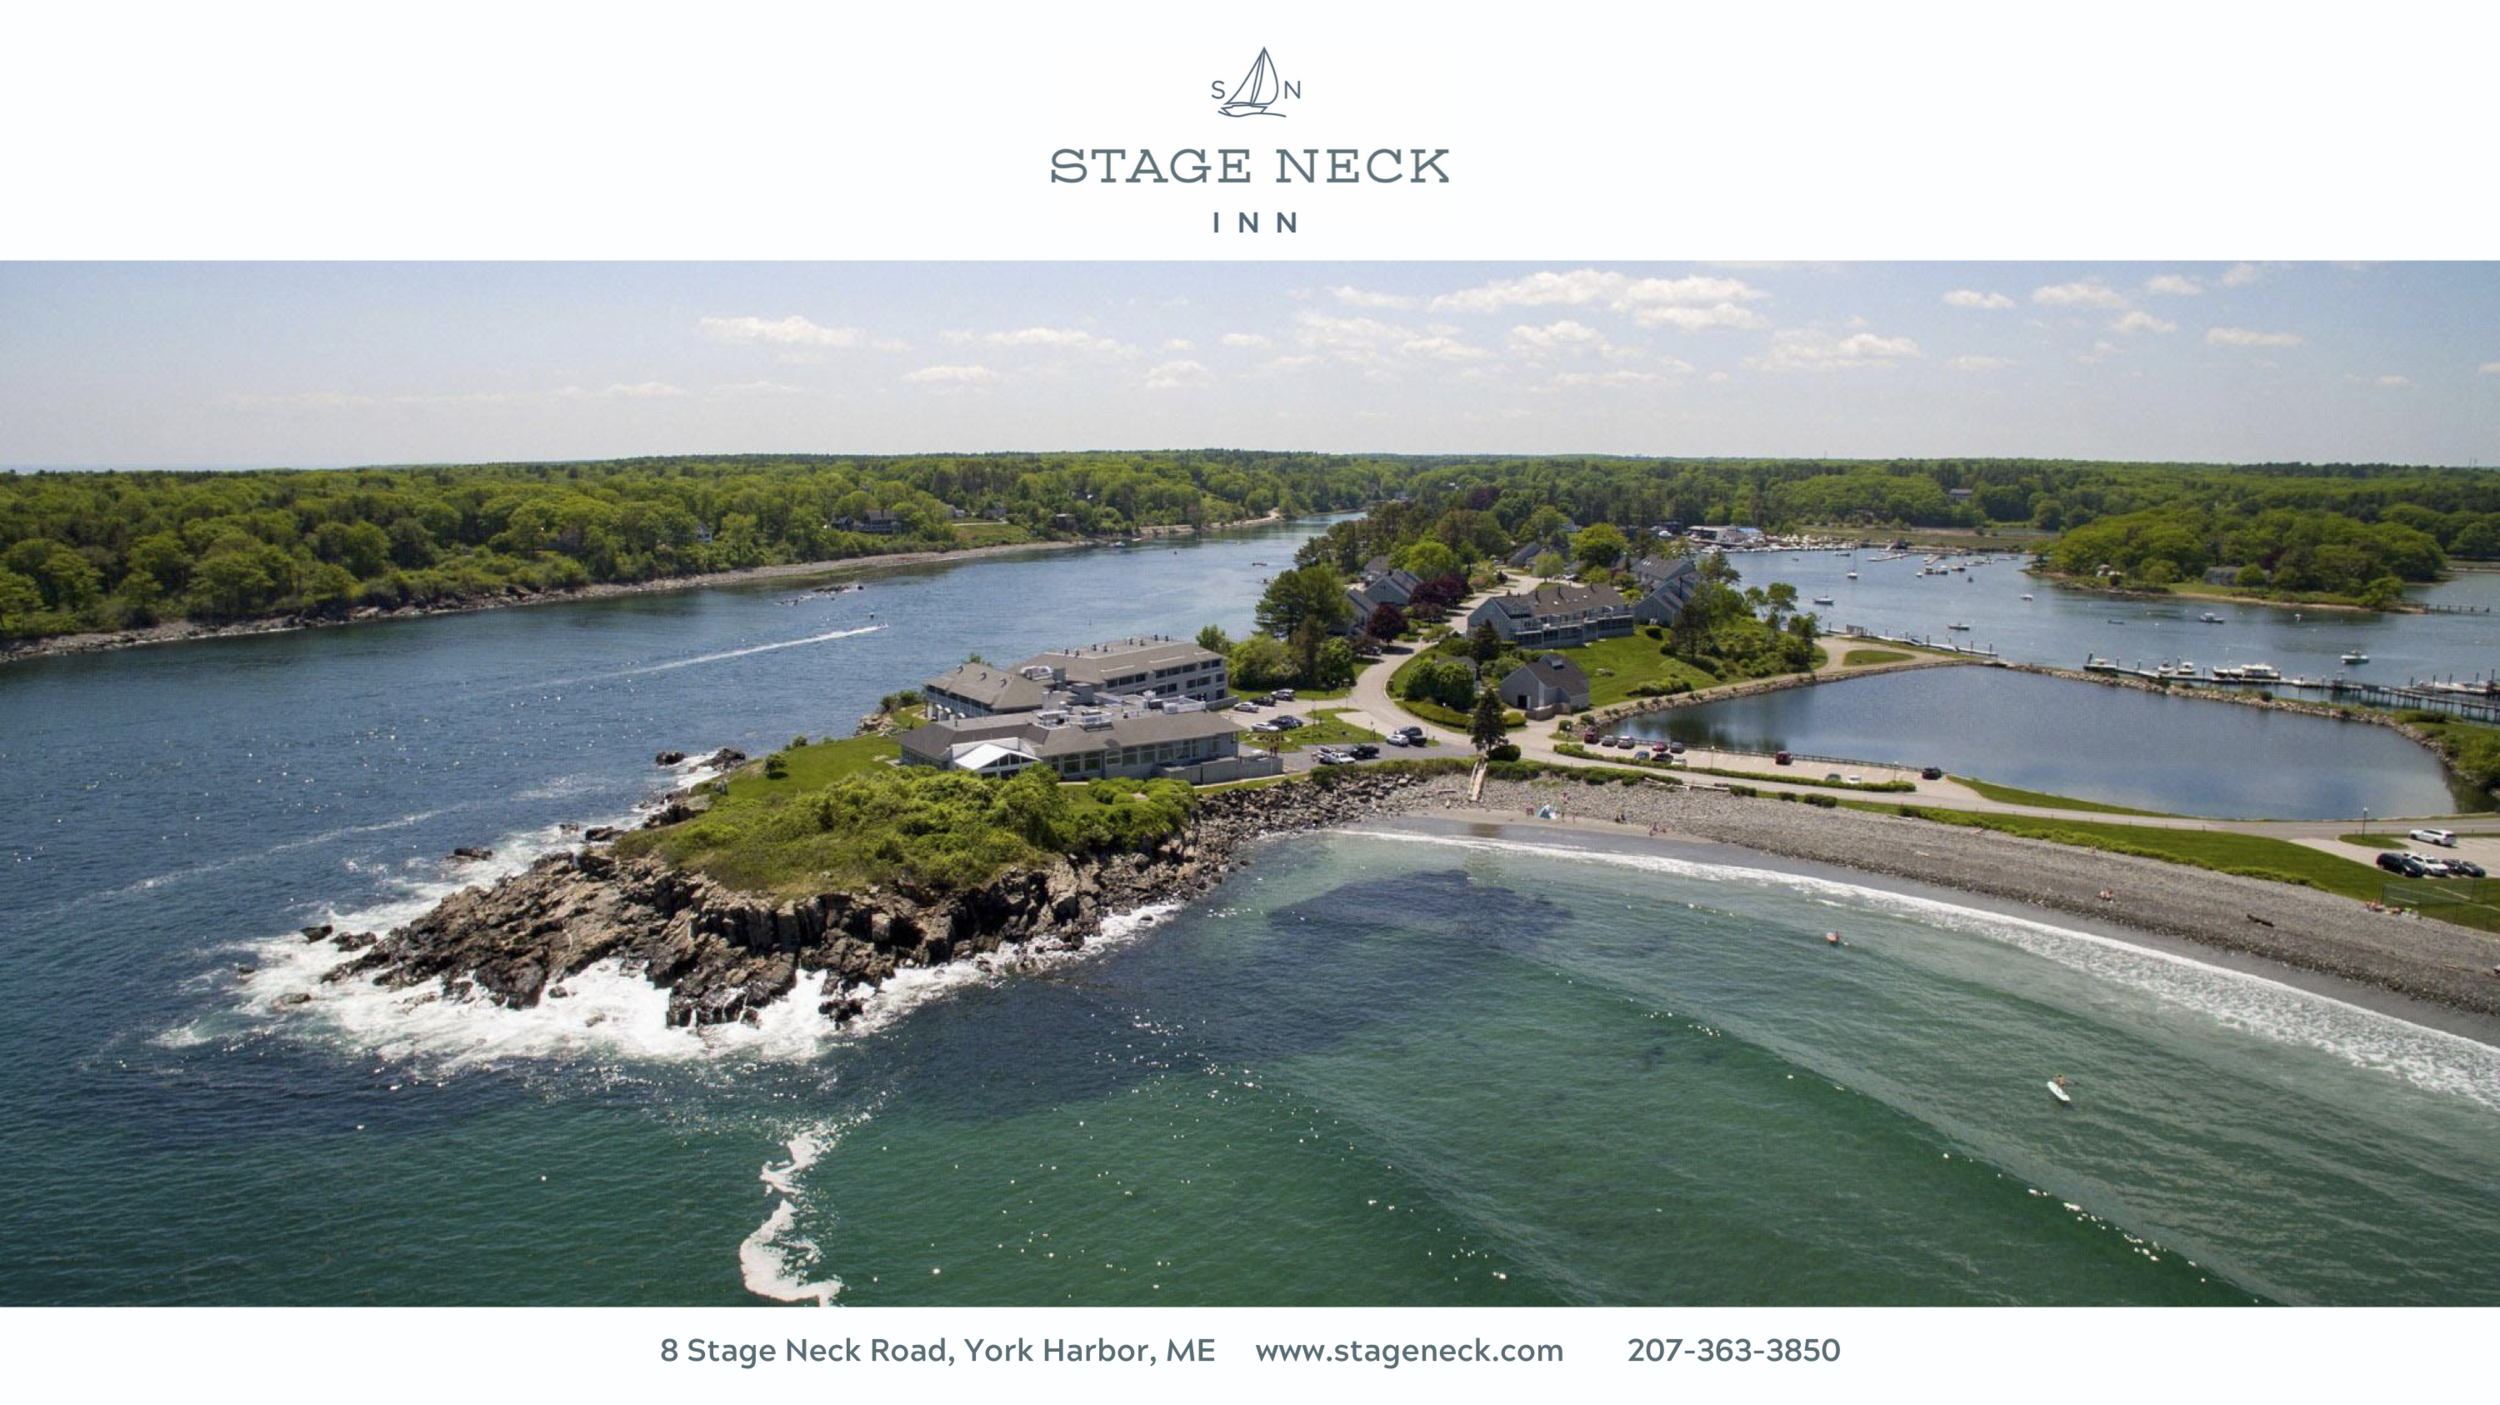 Stage Neck Inn Gift Certificate: Gift Certificate is a 1 night stay for two guests (including breakfast for 2)  *some restrictions may apply  Value $300.